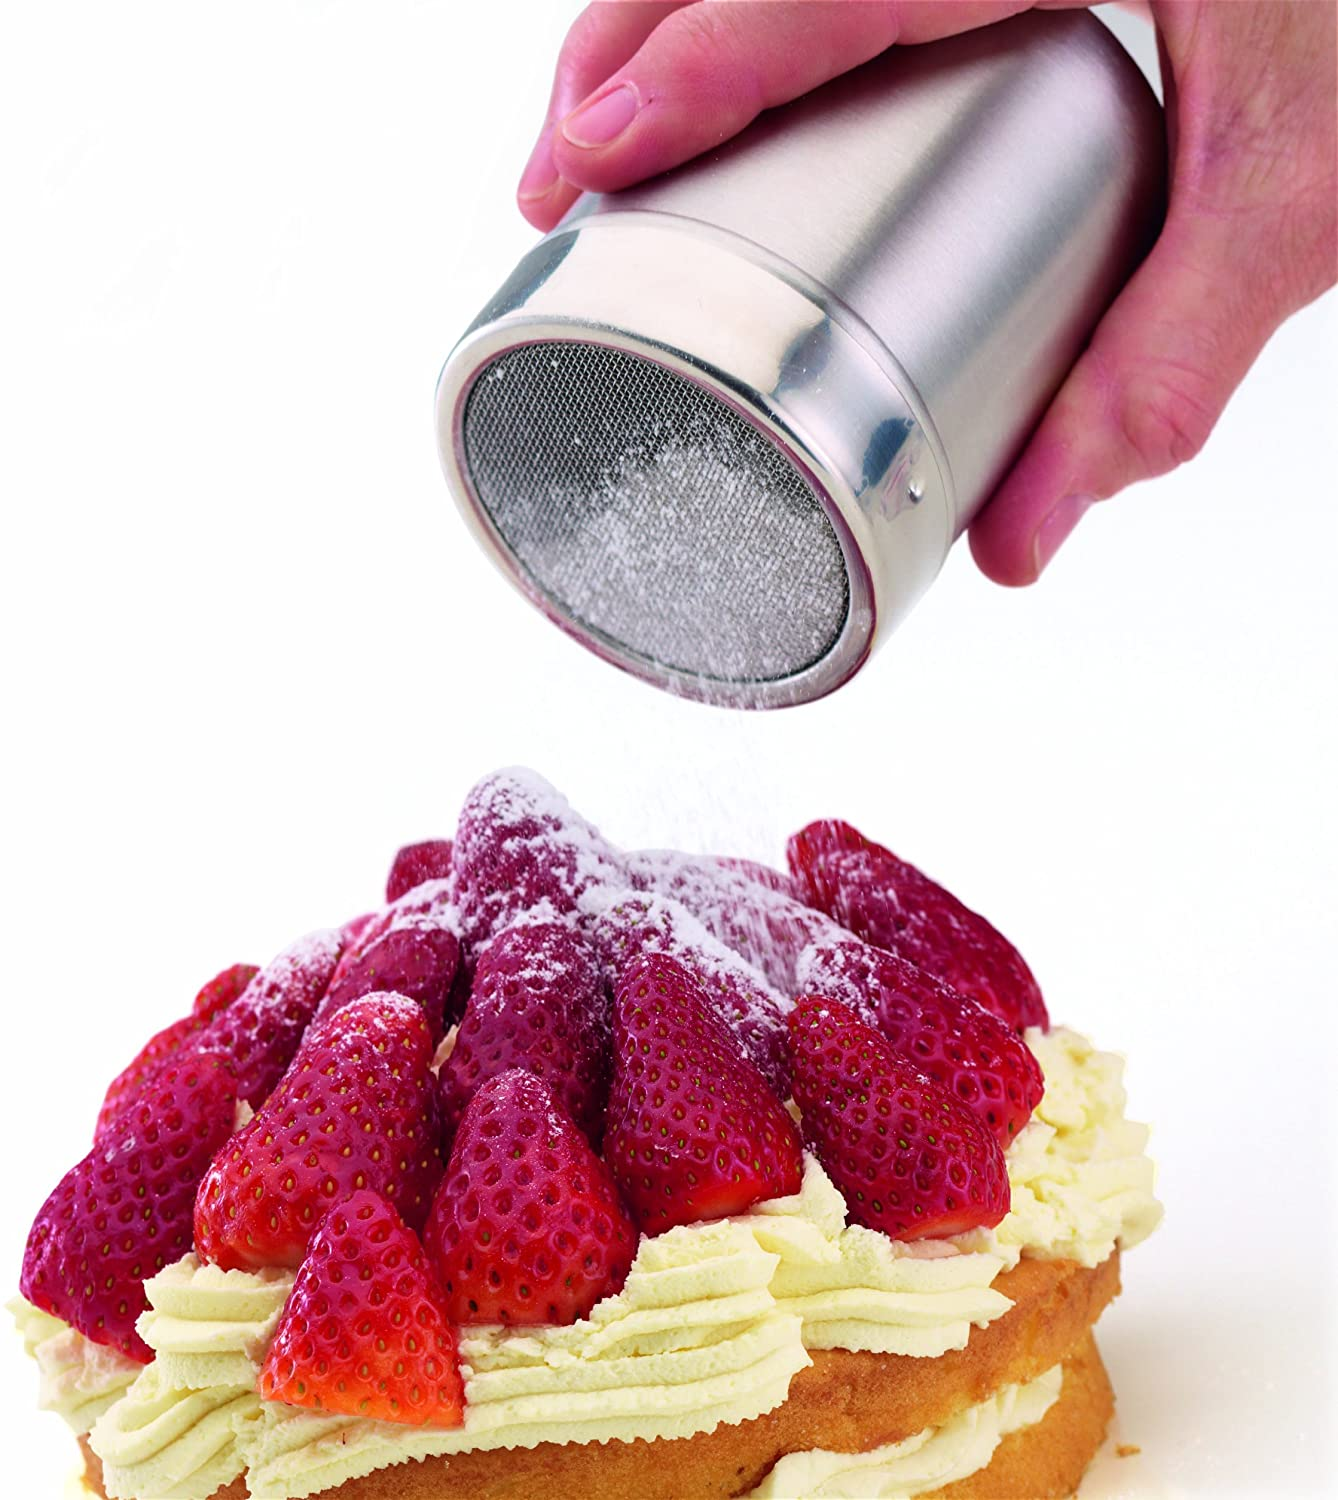 KitchenCraft Flour Sifter / Icing Sugar Shaker with Fine Mesh, Stainless Steel